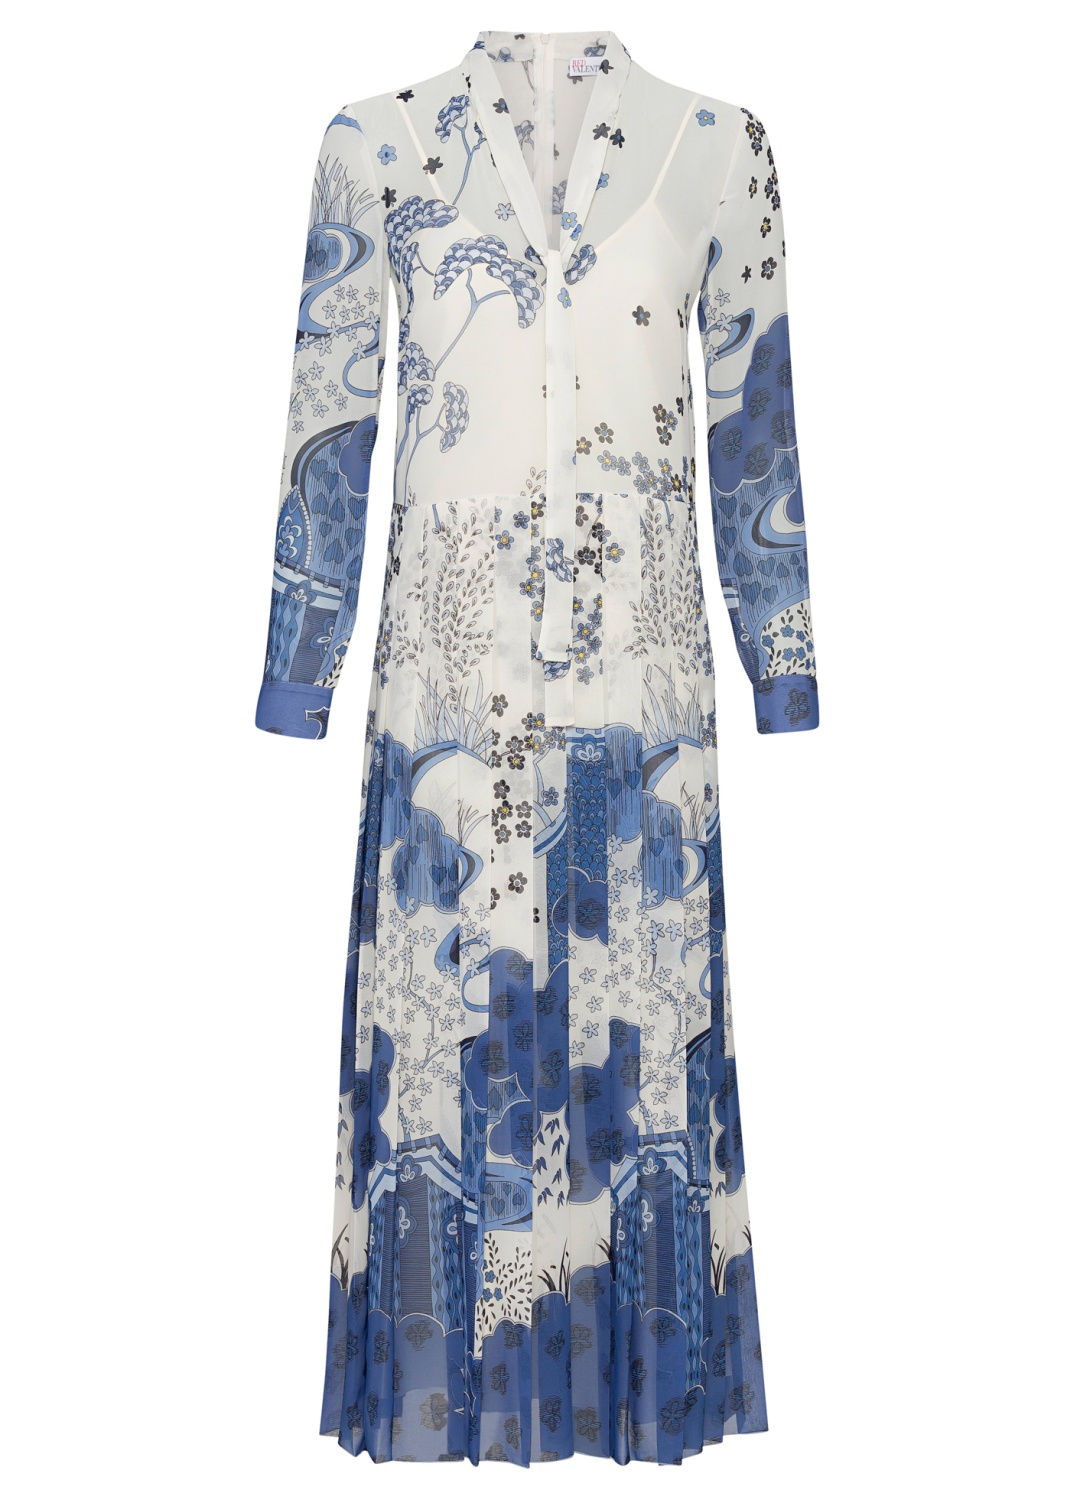 COORD. OFFERTA ABITO ST.ORIEN TOILE,MUSS image number 0